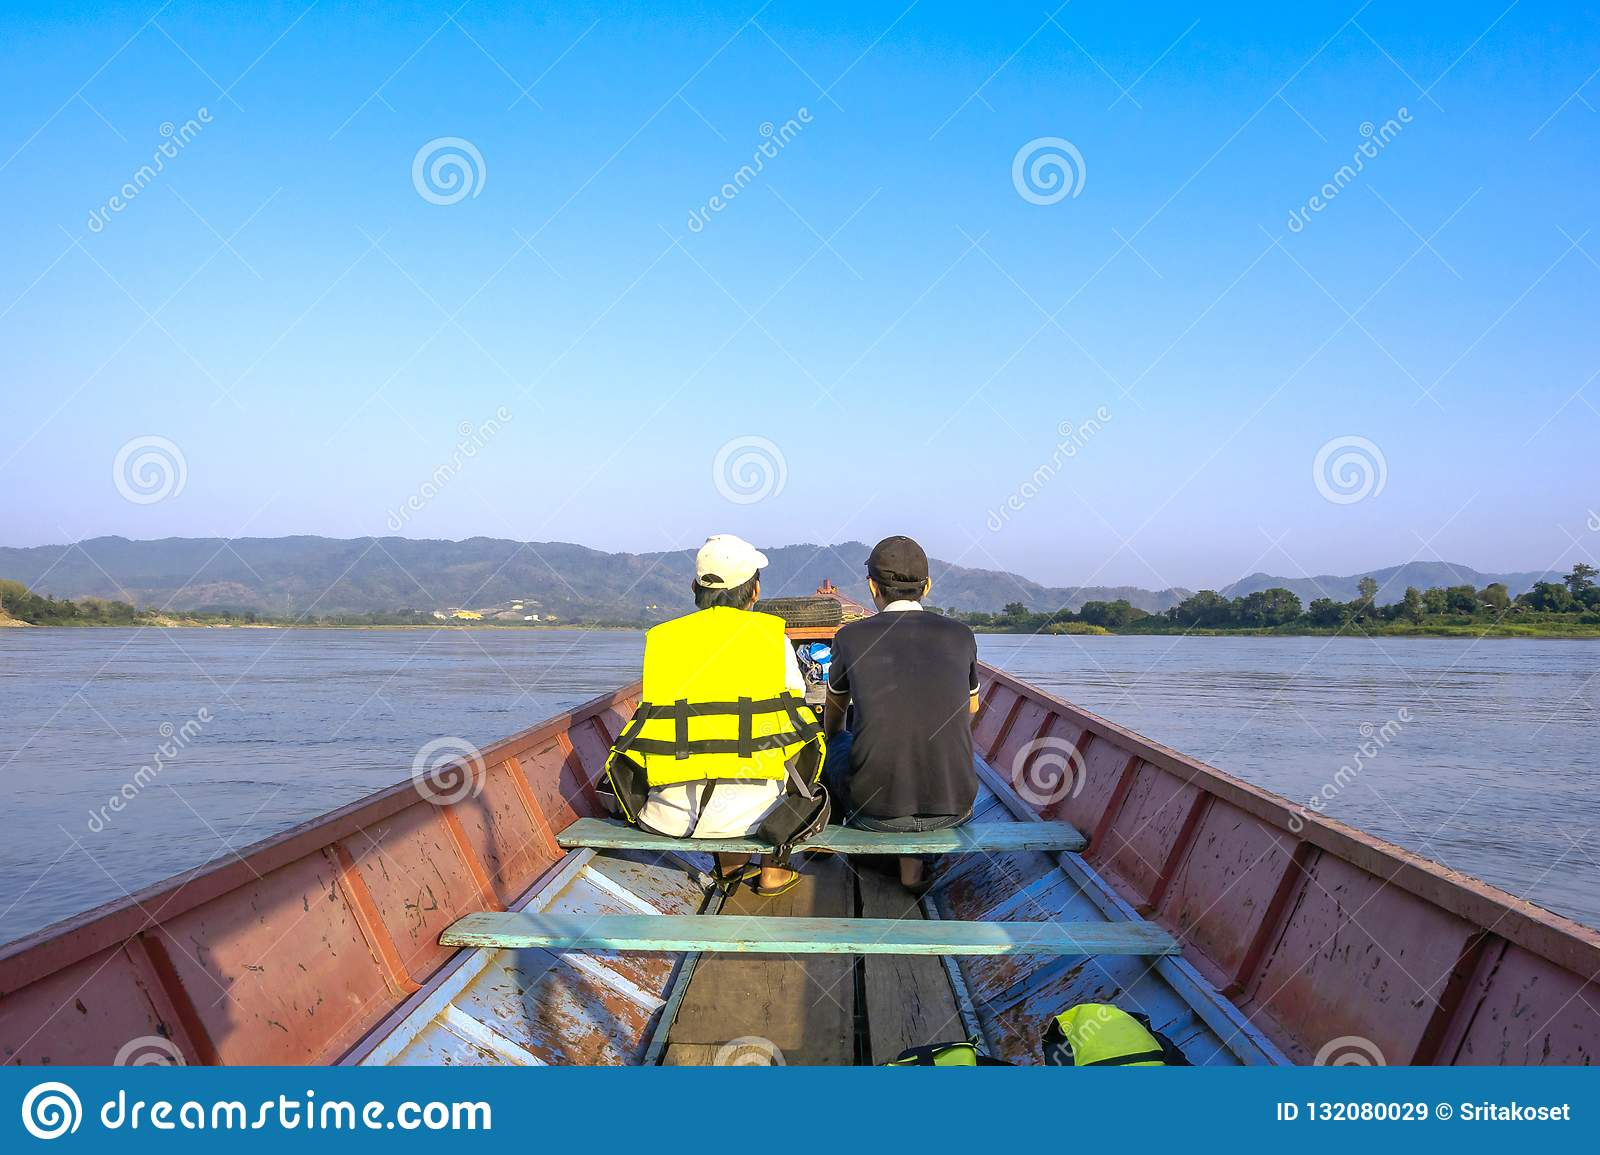 Visitors can take a small boat to see the nature along the Mekong River.